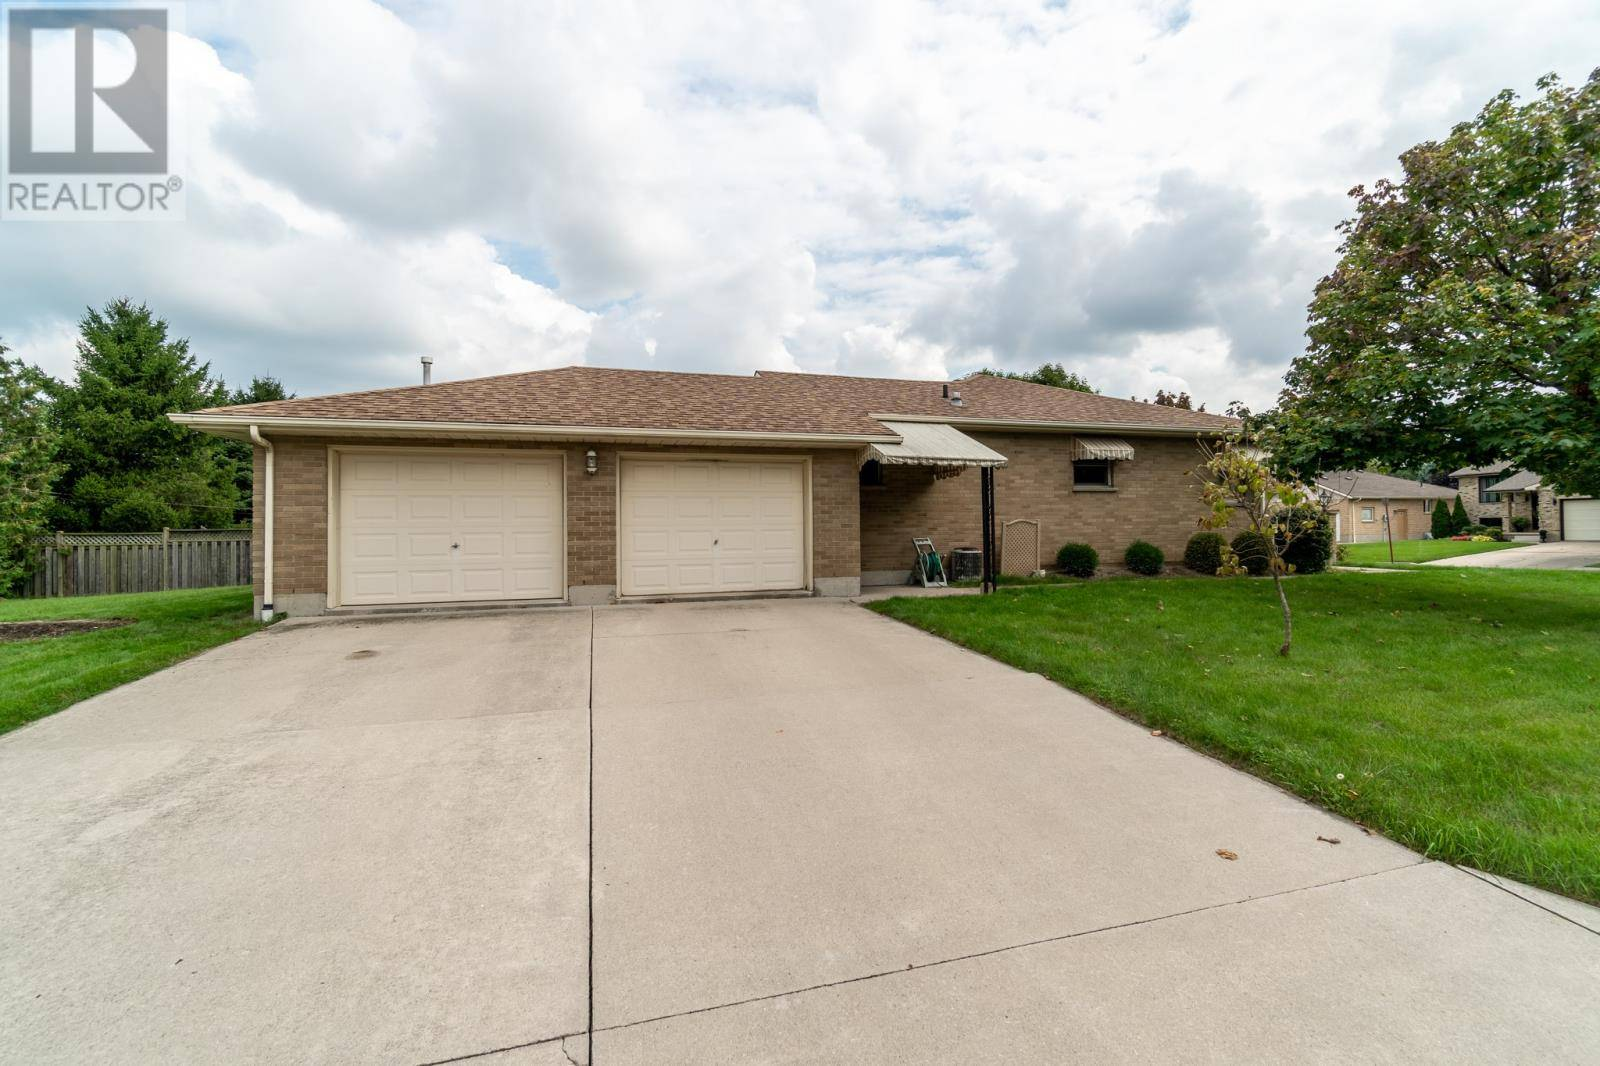 House for sale at 196 Bruinsma Ave Wallaceburg Ontario - MLS: 19024937